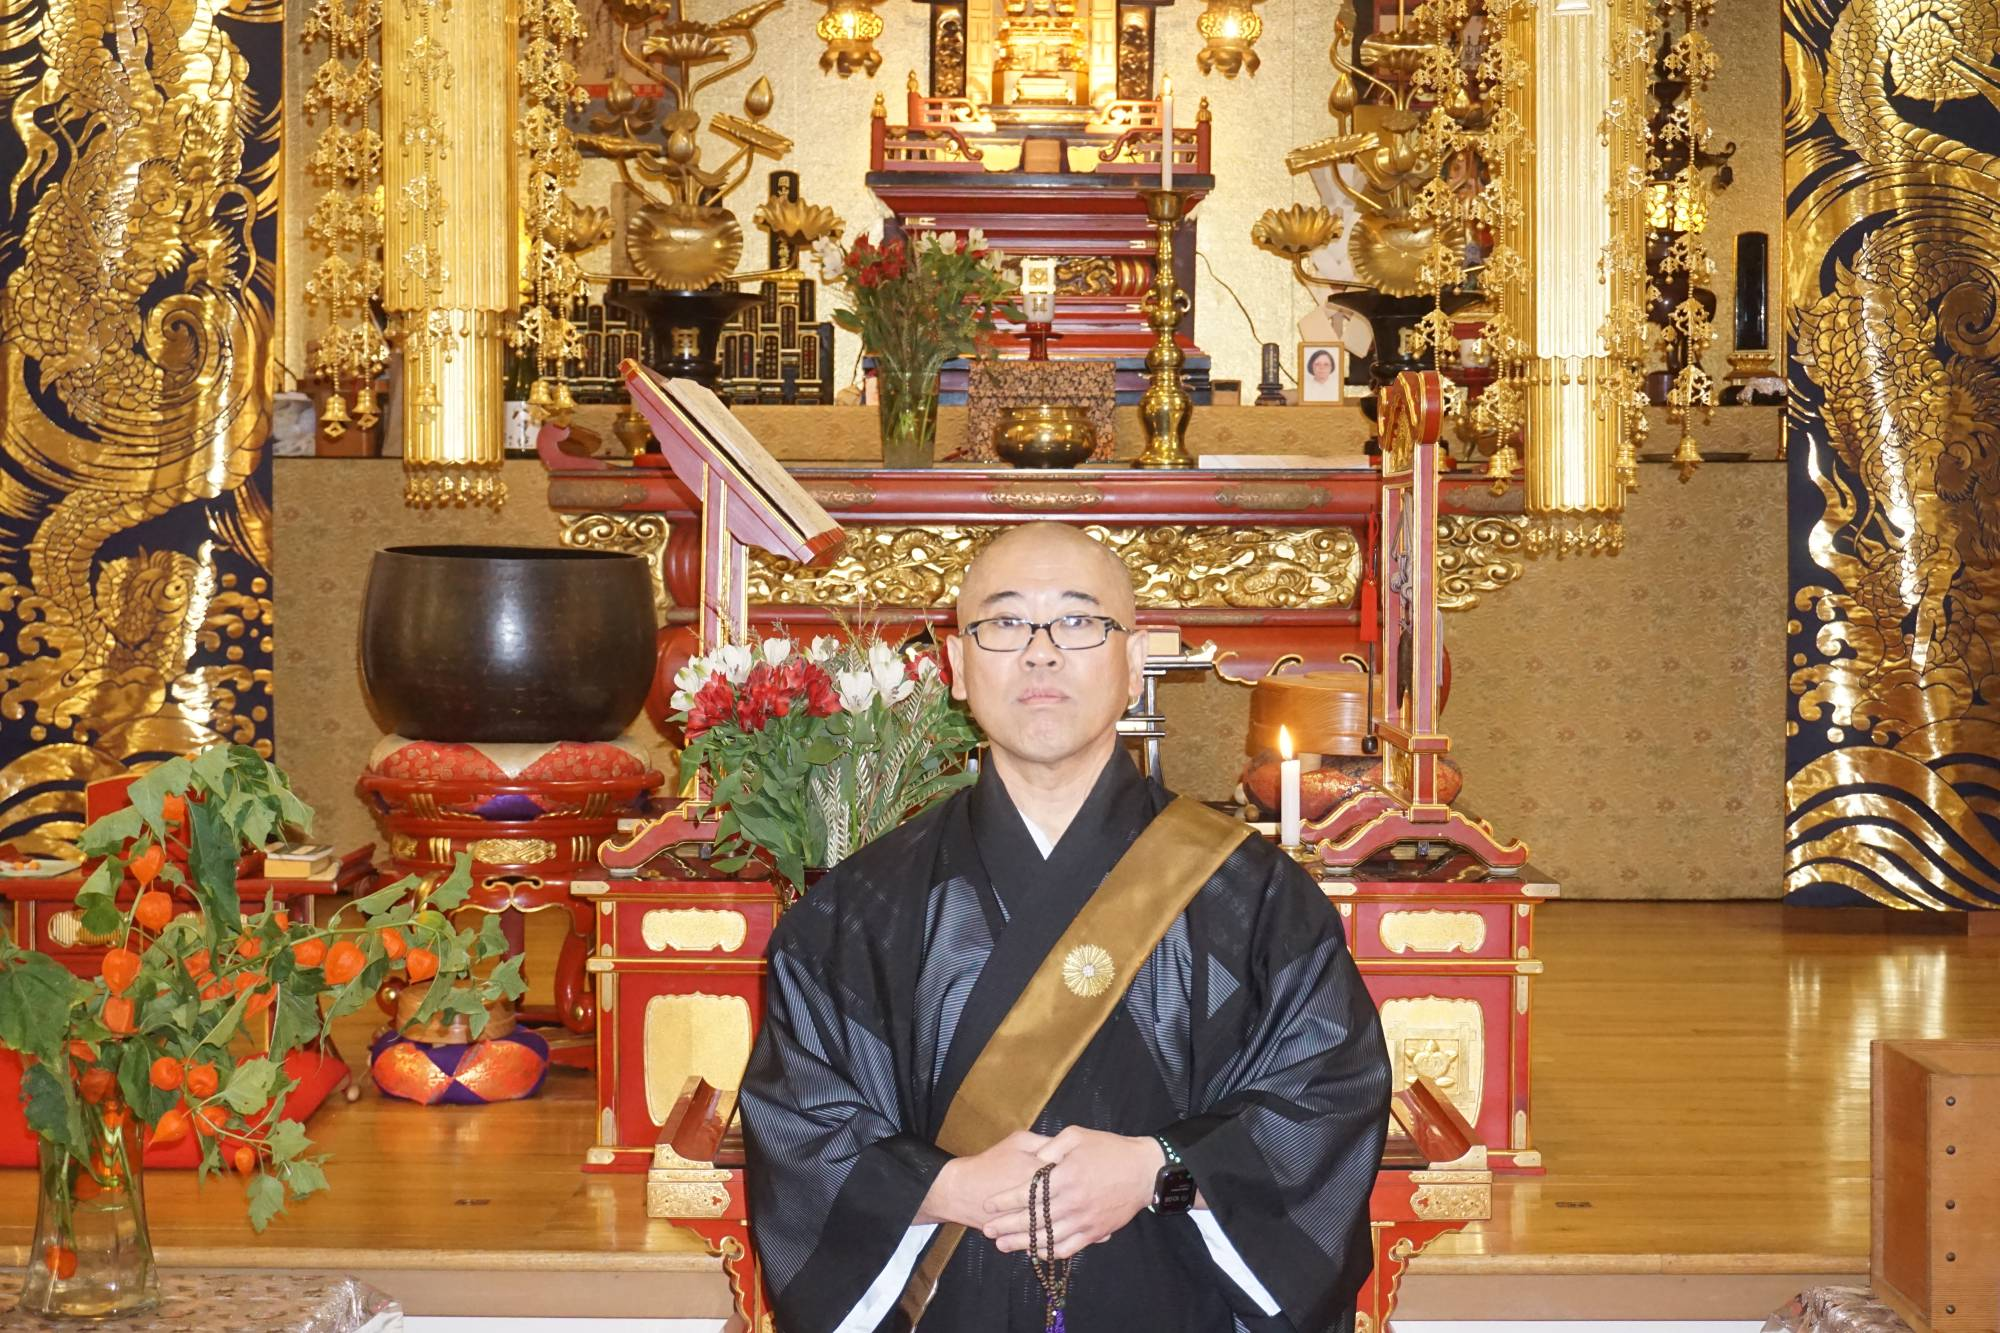 Eisai Ikenaga is the reverend of Nichiren Buddhist Temple of Portland, Oregon, a state that has seen rising cases of COVID-19 since the start of October. | COURTESY OF EISAI IKENAGA